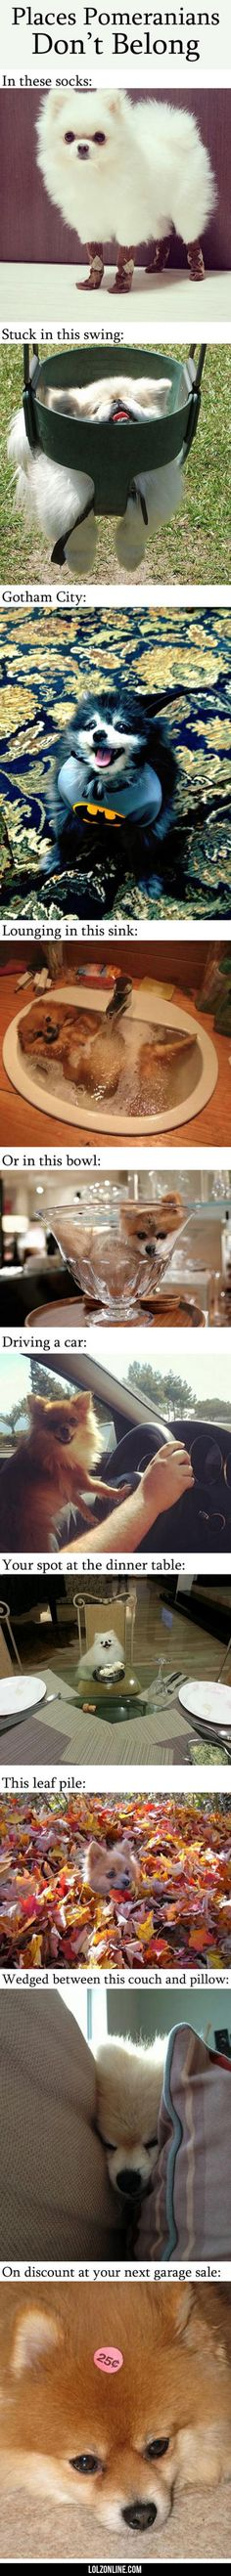 Places Where Pomeranians Don't Belong #lol #haha #funny